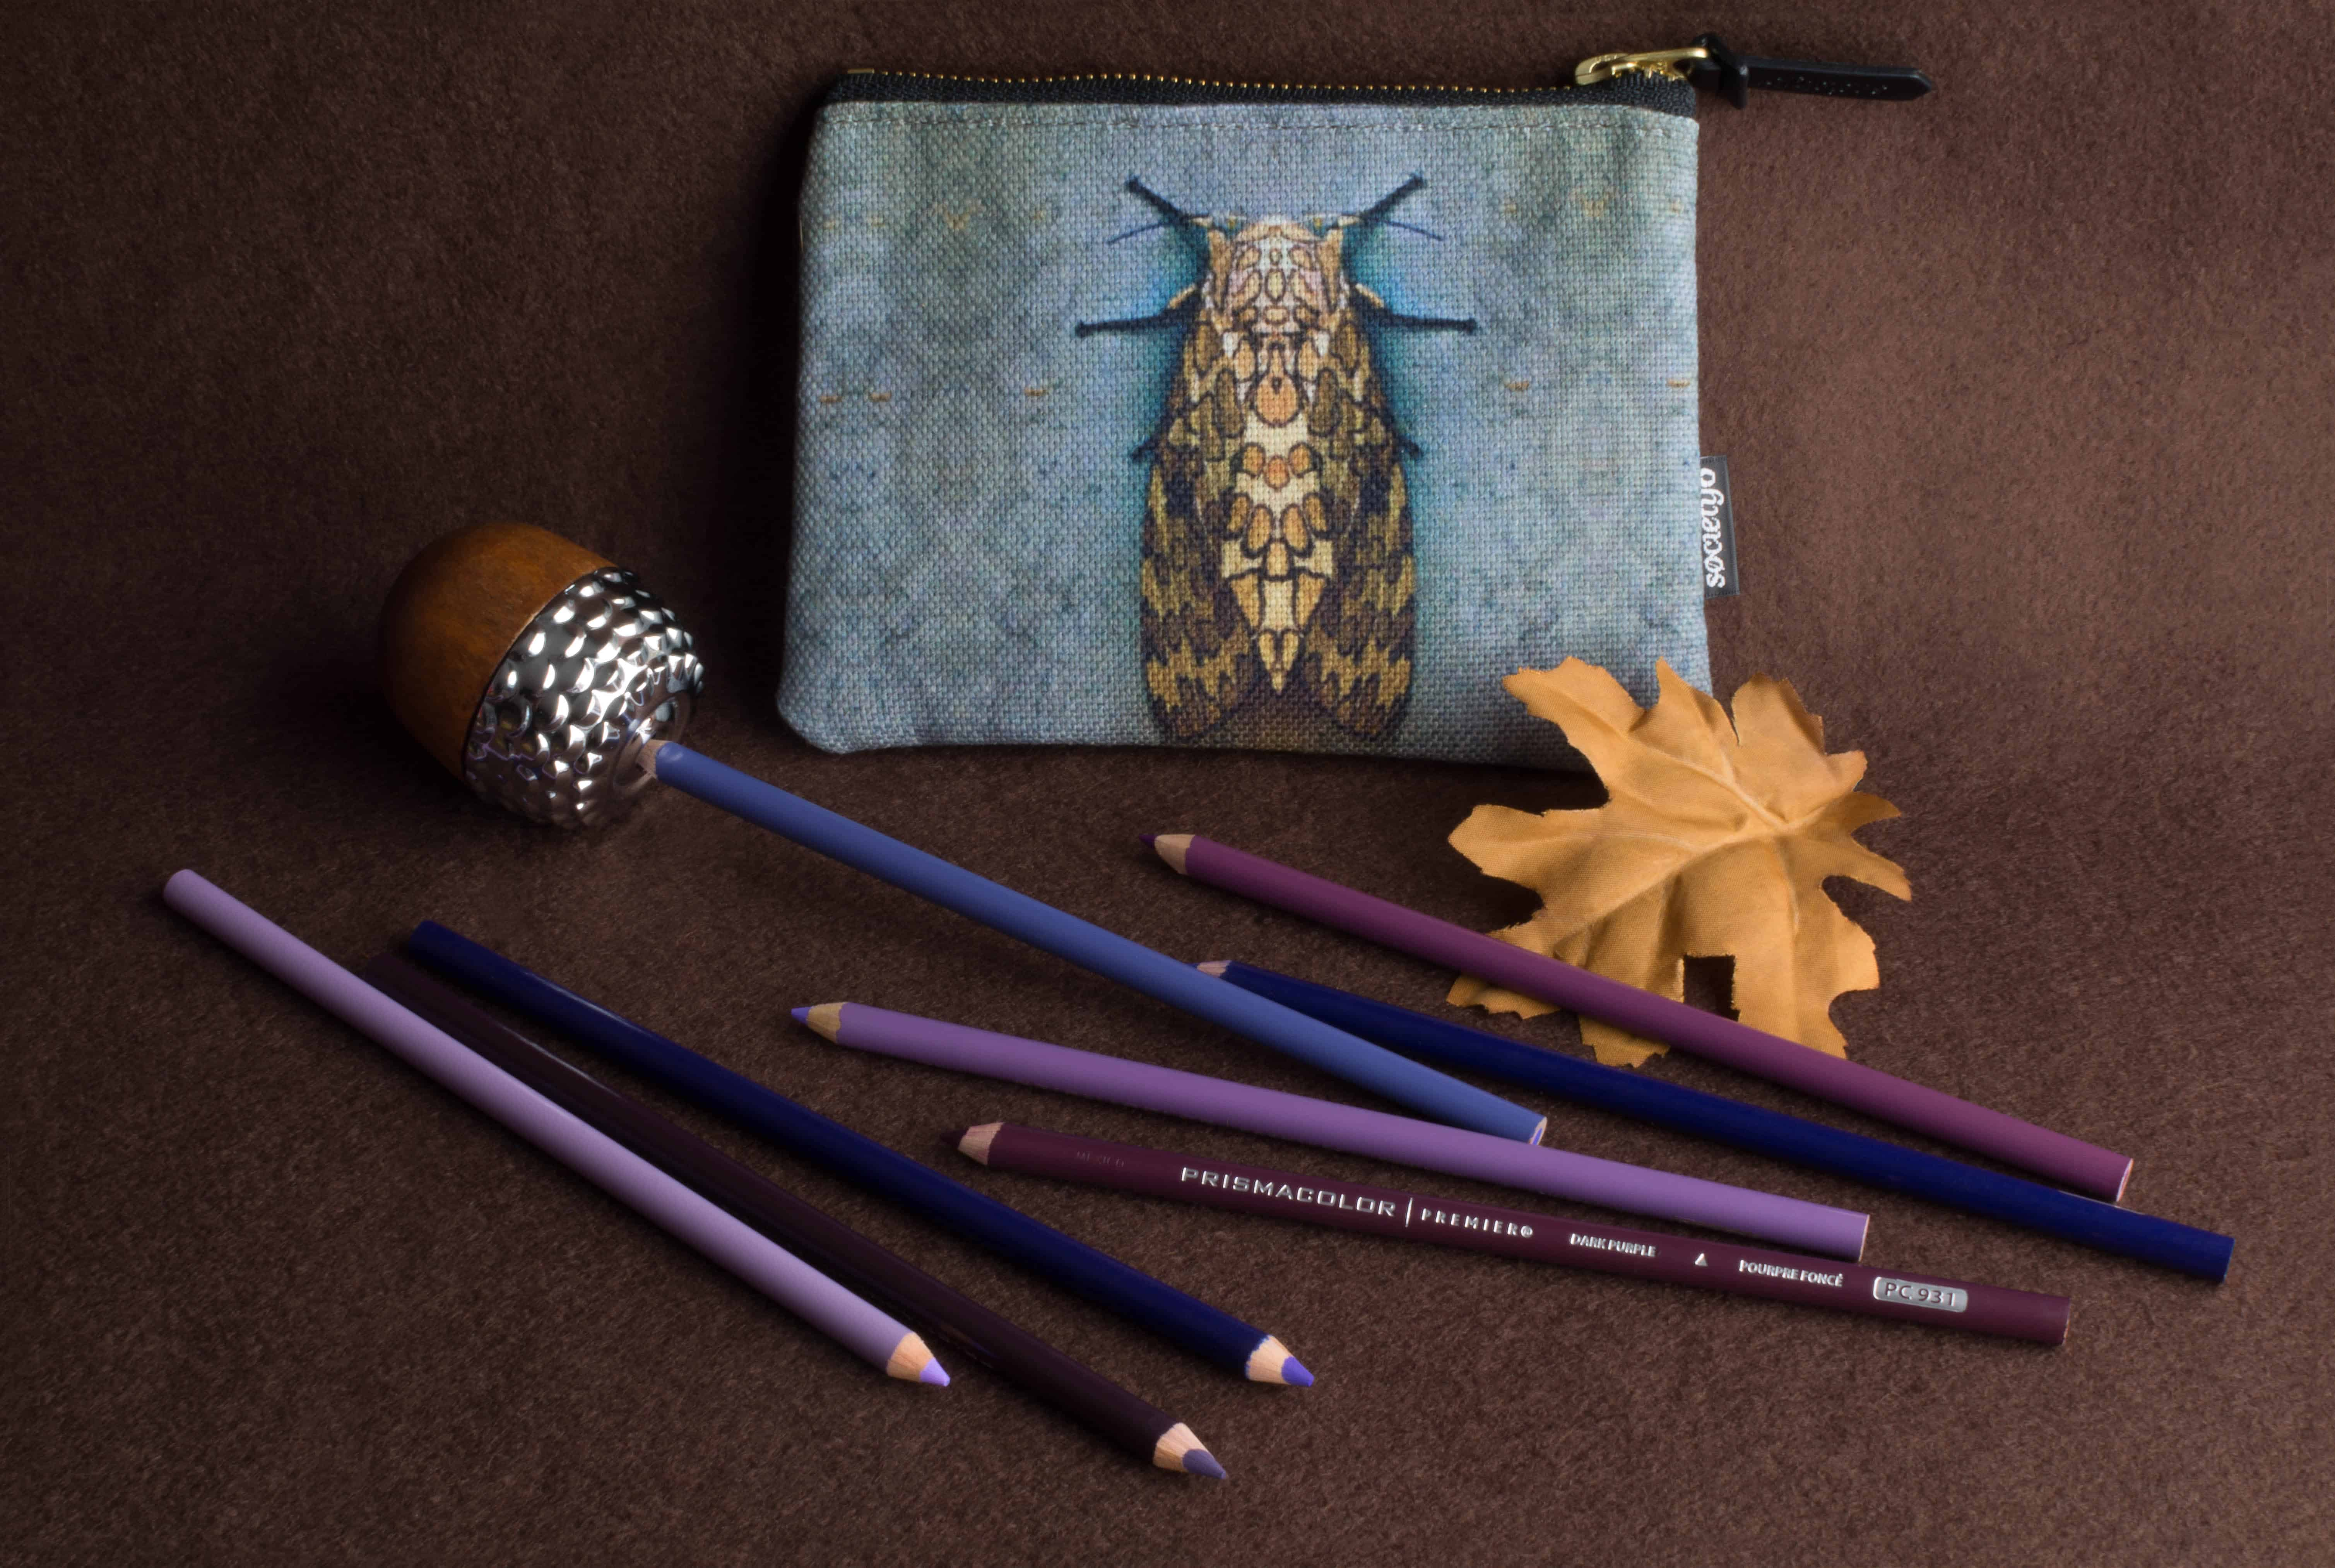 Photo of a still life with prismacolor colored pencils, a pencil pouch, a pencil sharpener, and an autumn leaf.